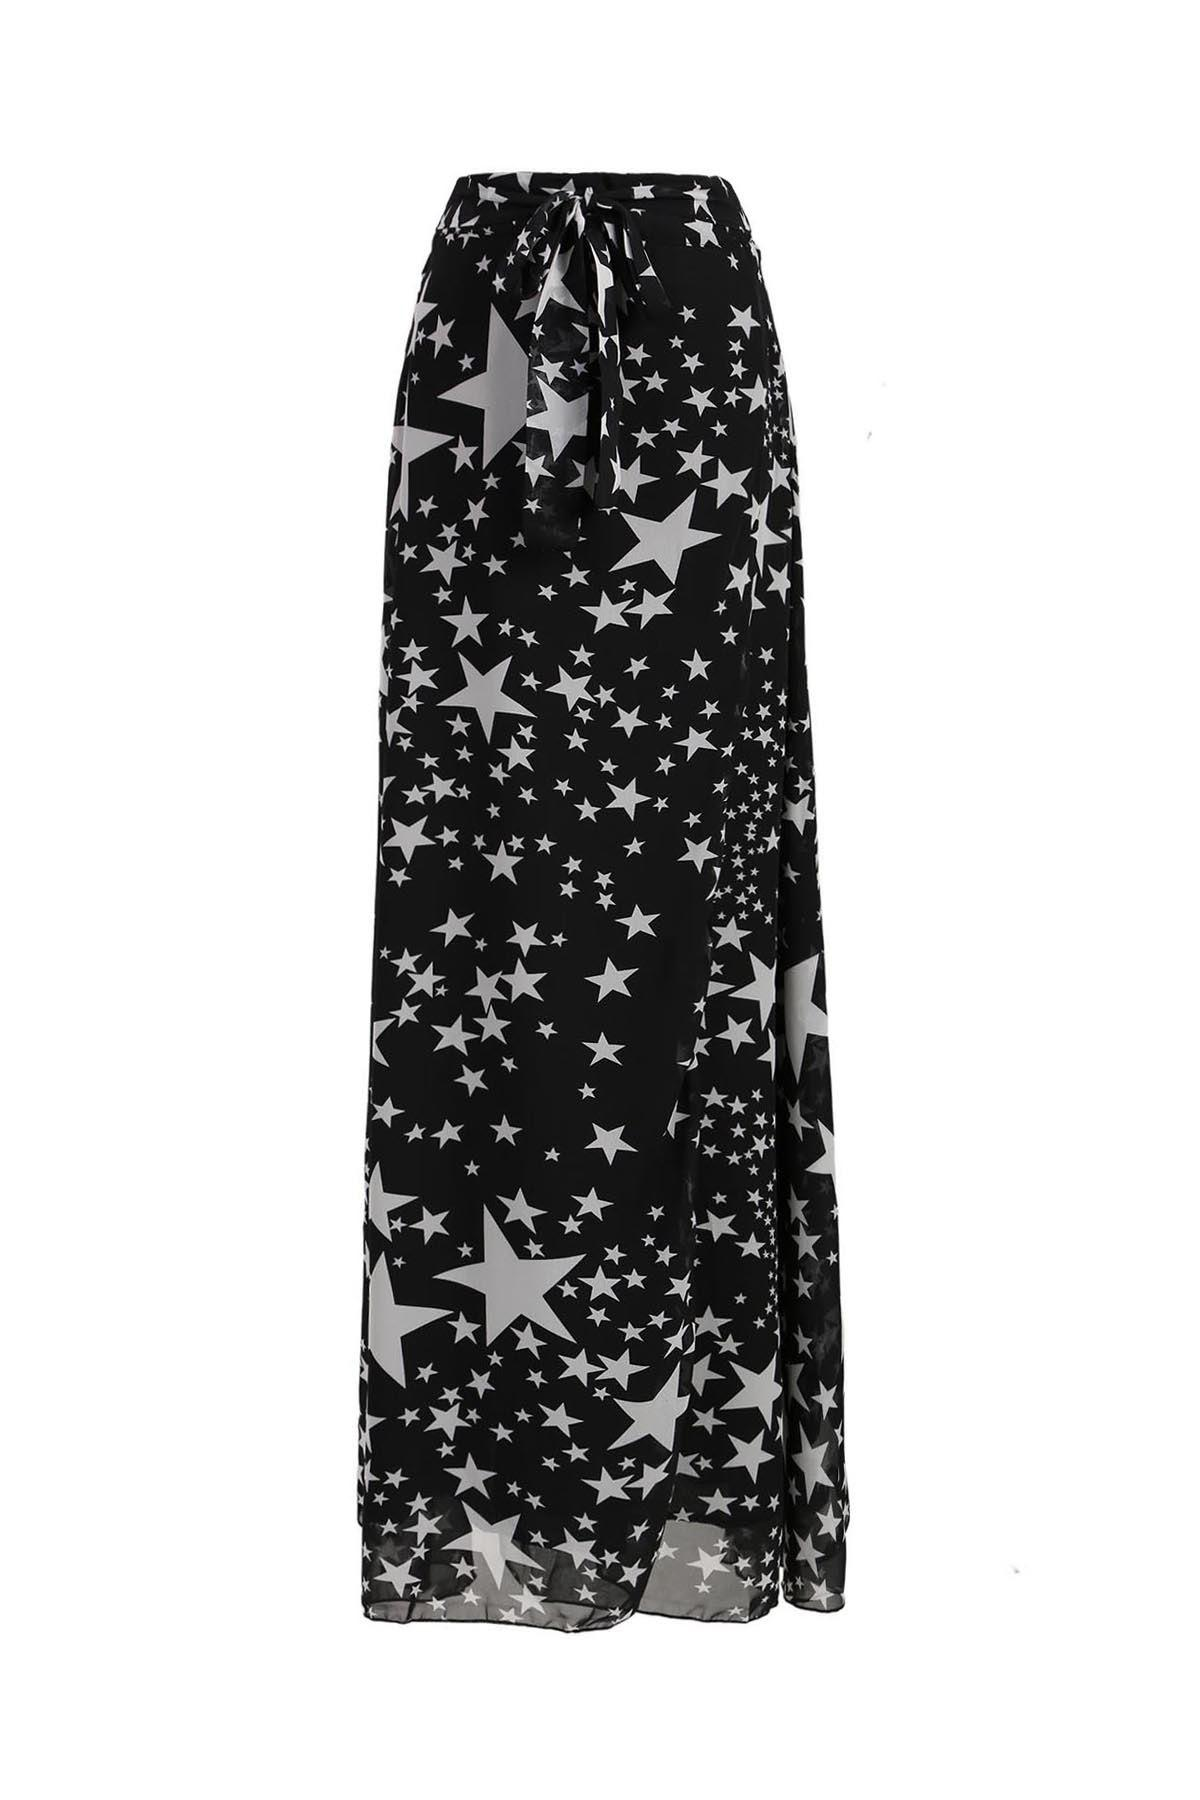 Alluring Women's Stars Print High Slit Skirt - BLACK M